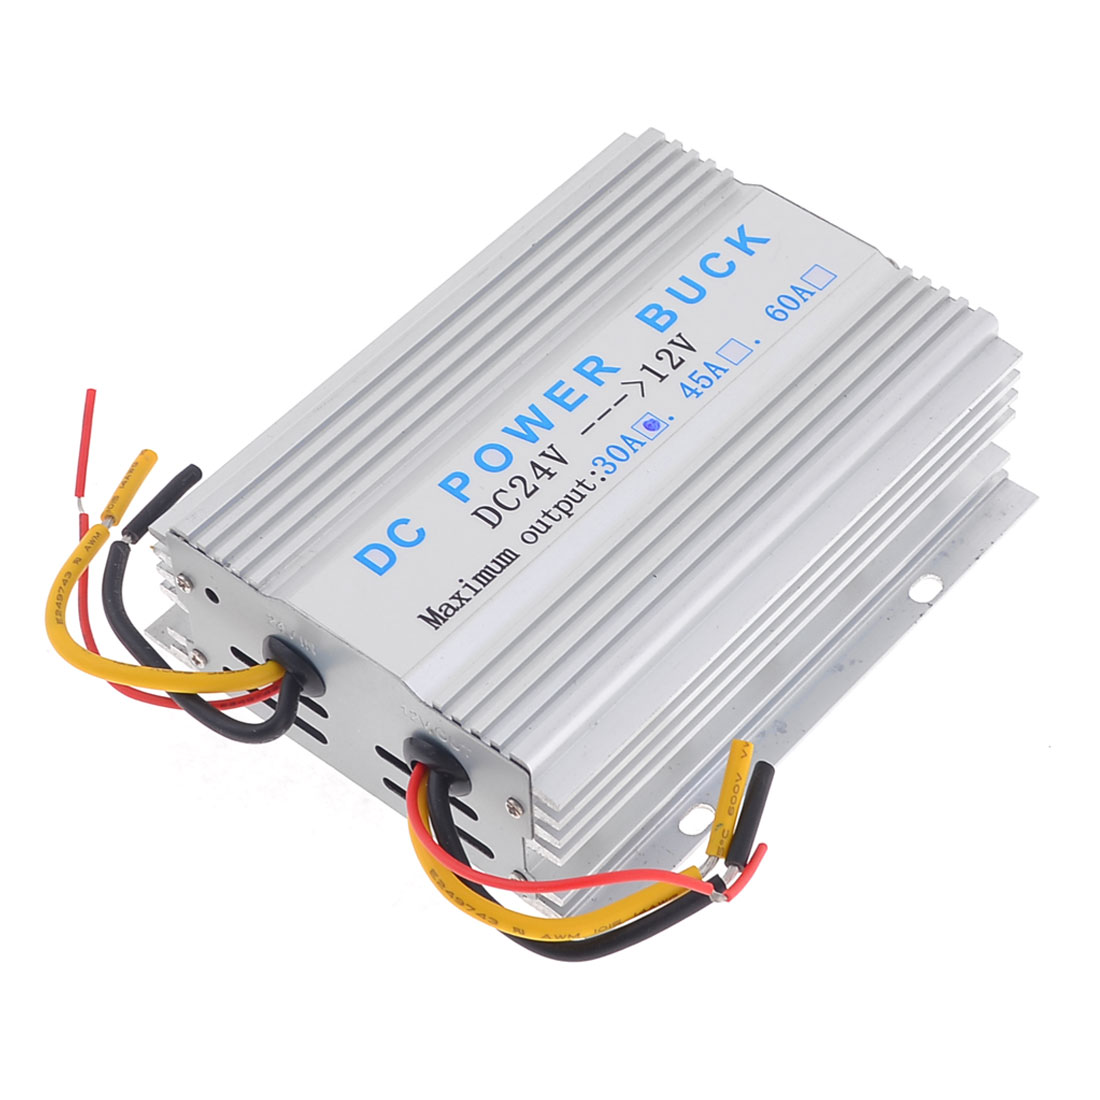 Silver Tone Metal Casing DC 24V to 12V 30A Power Supply Converter for Auto